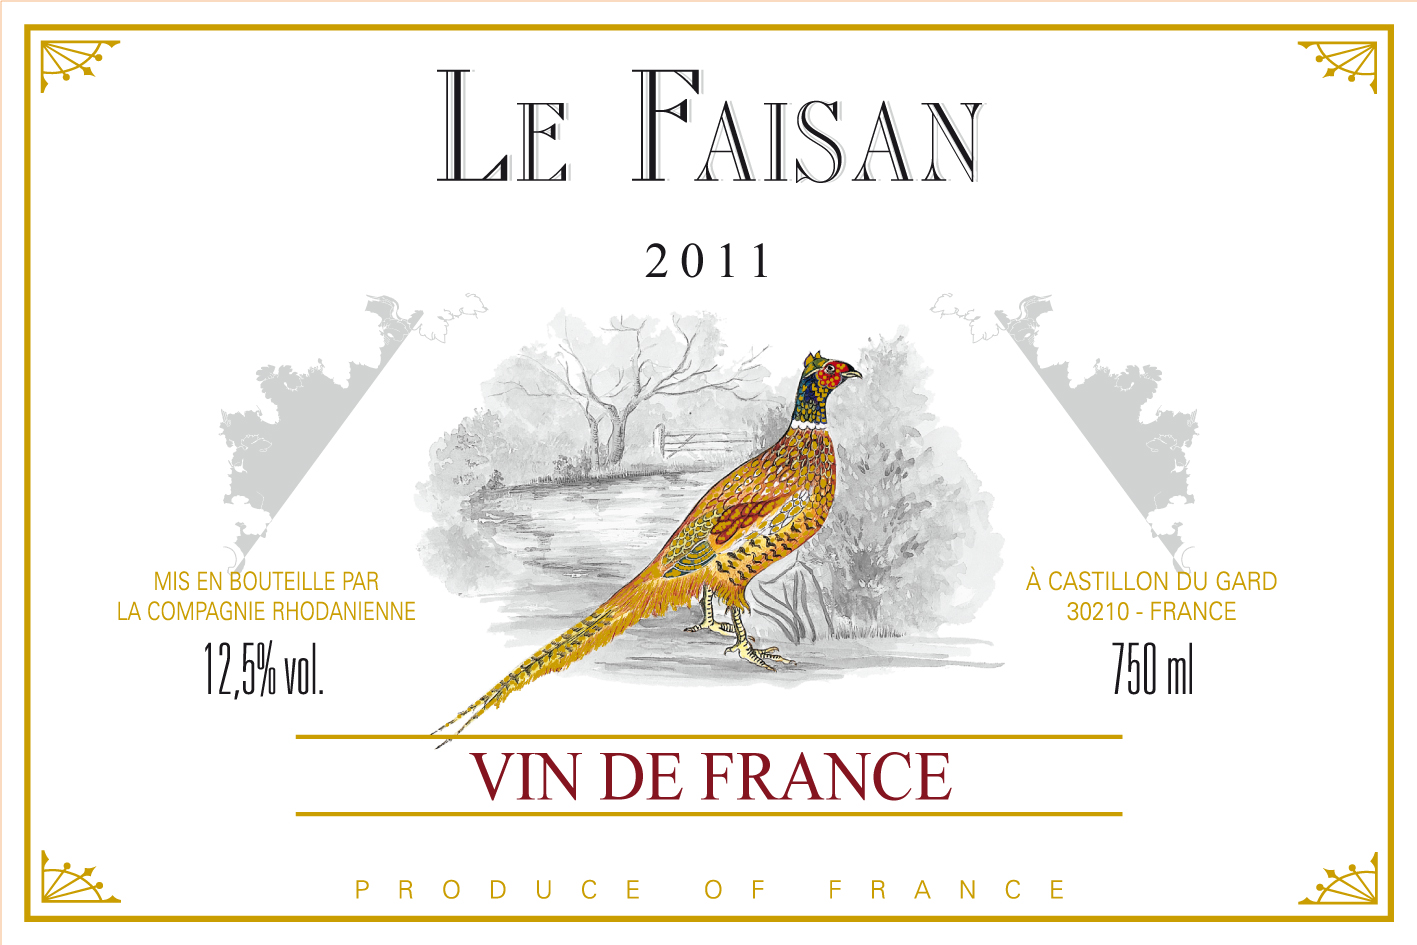 Vin de France label.jpg